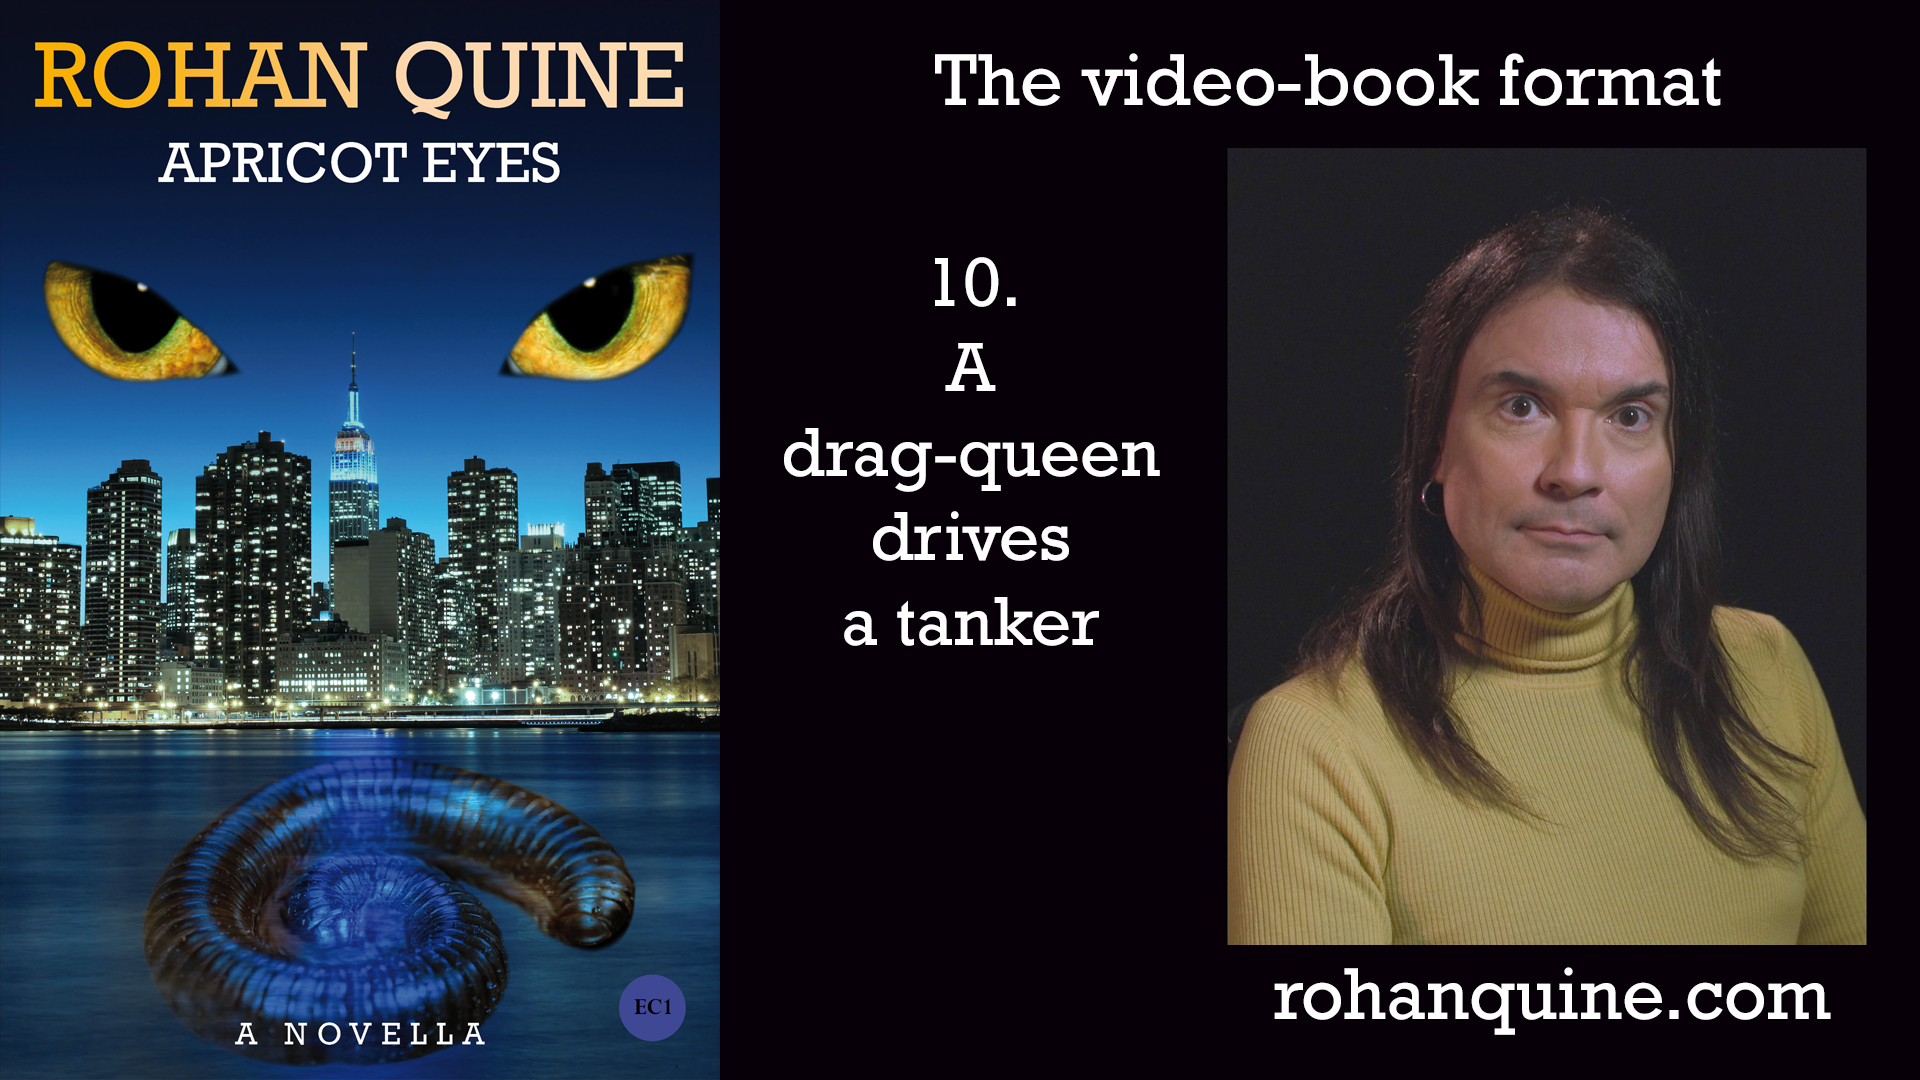 APRICOT EYES by Rohan Quine - video-book format - chapter 10